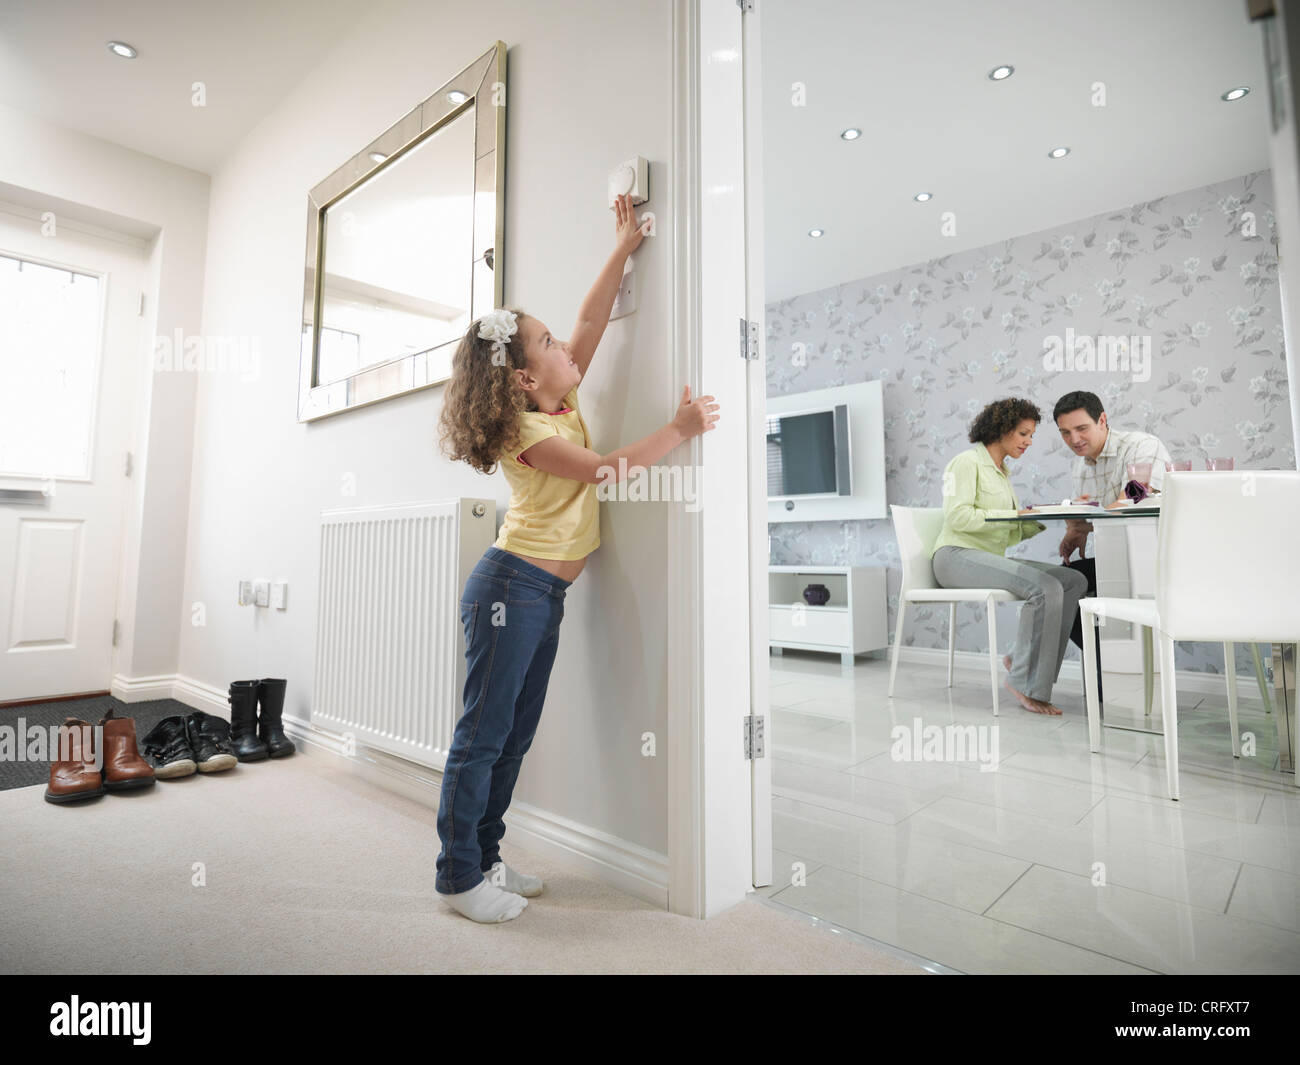 Girl reaching for thermostat - Stock Image